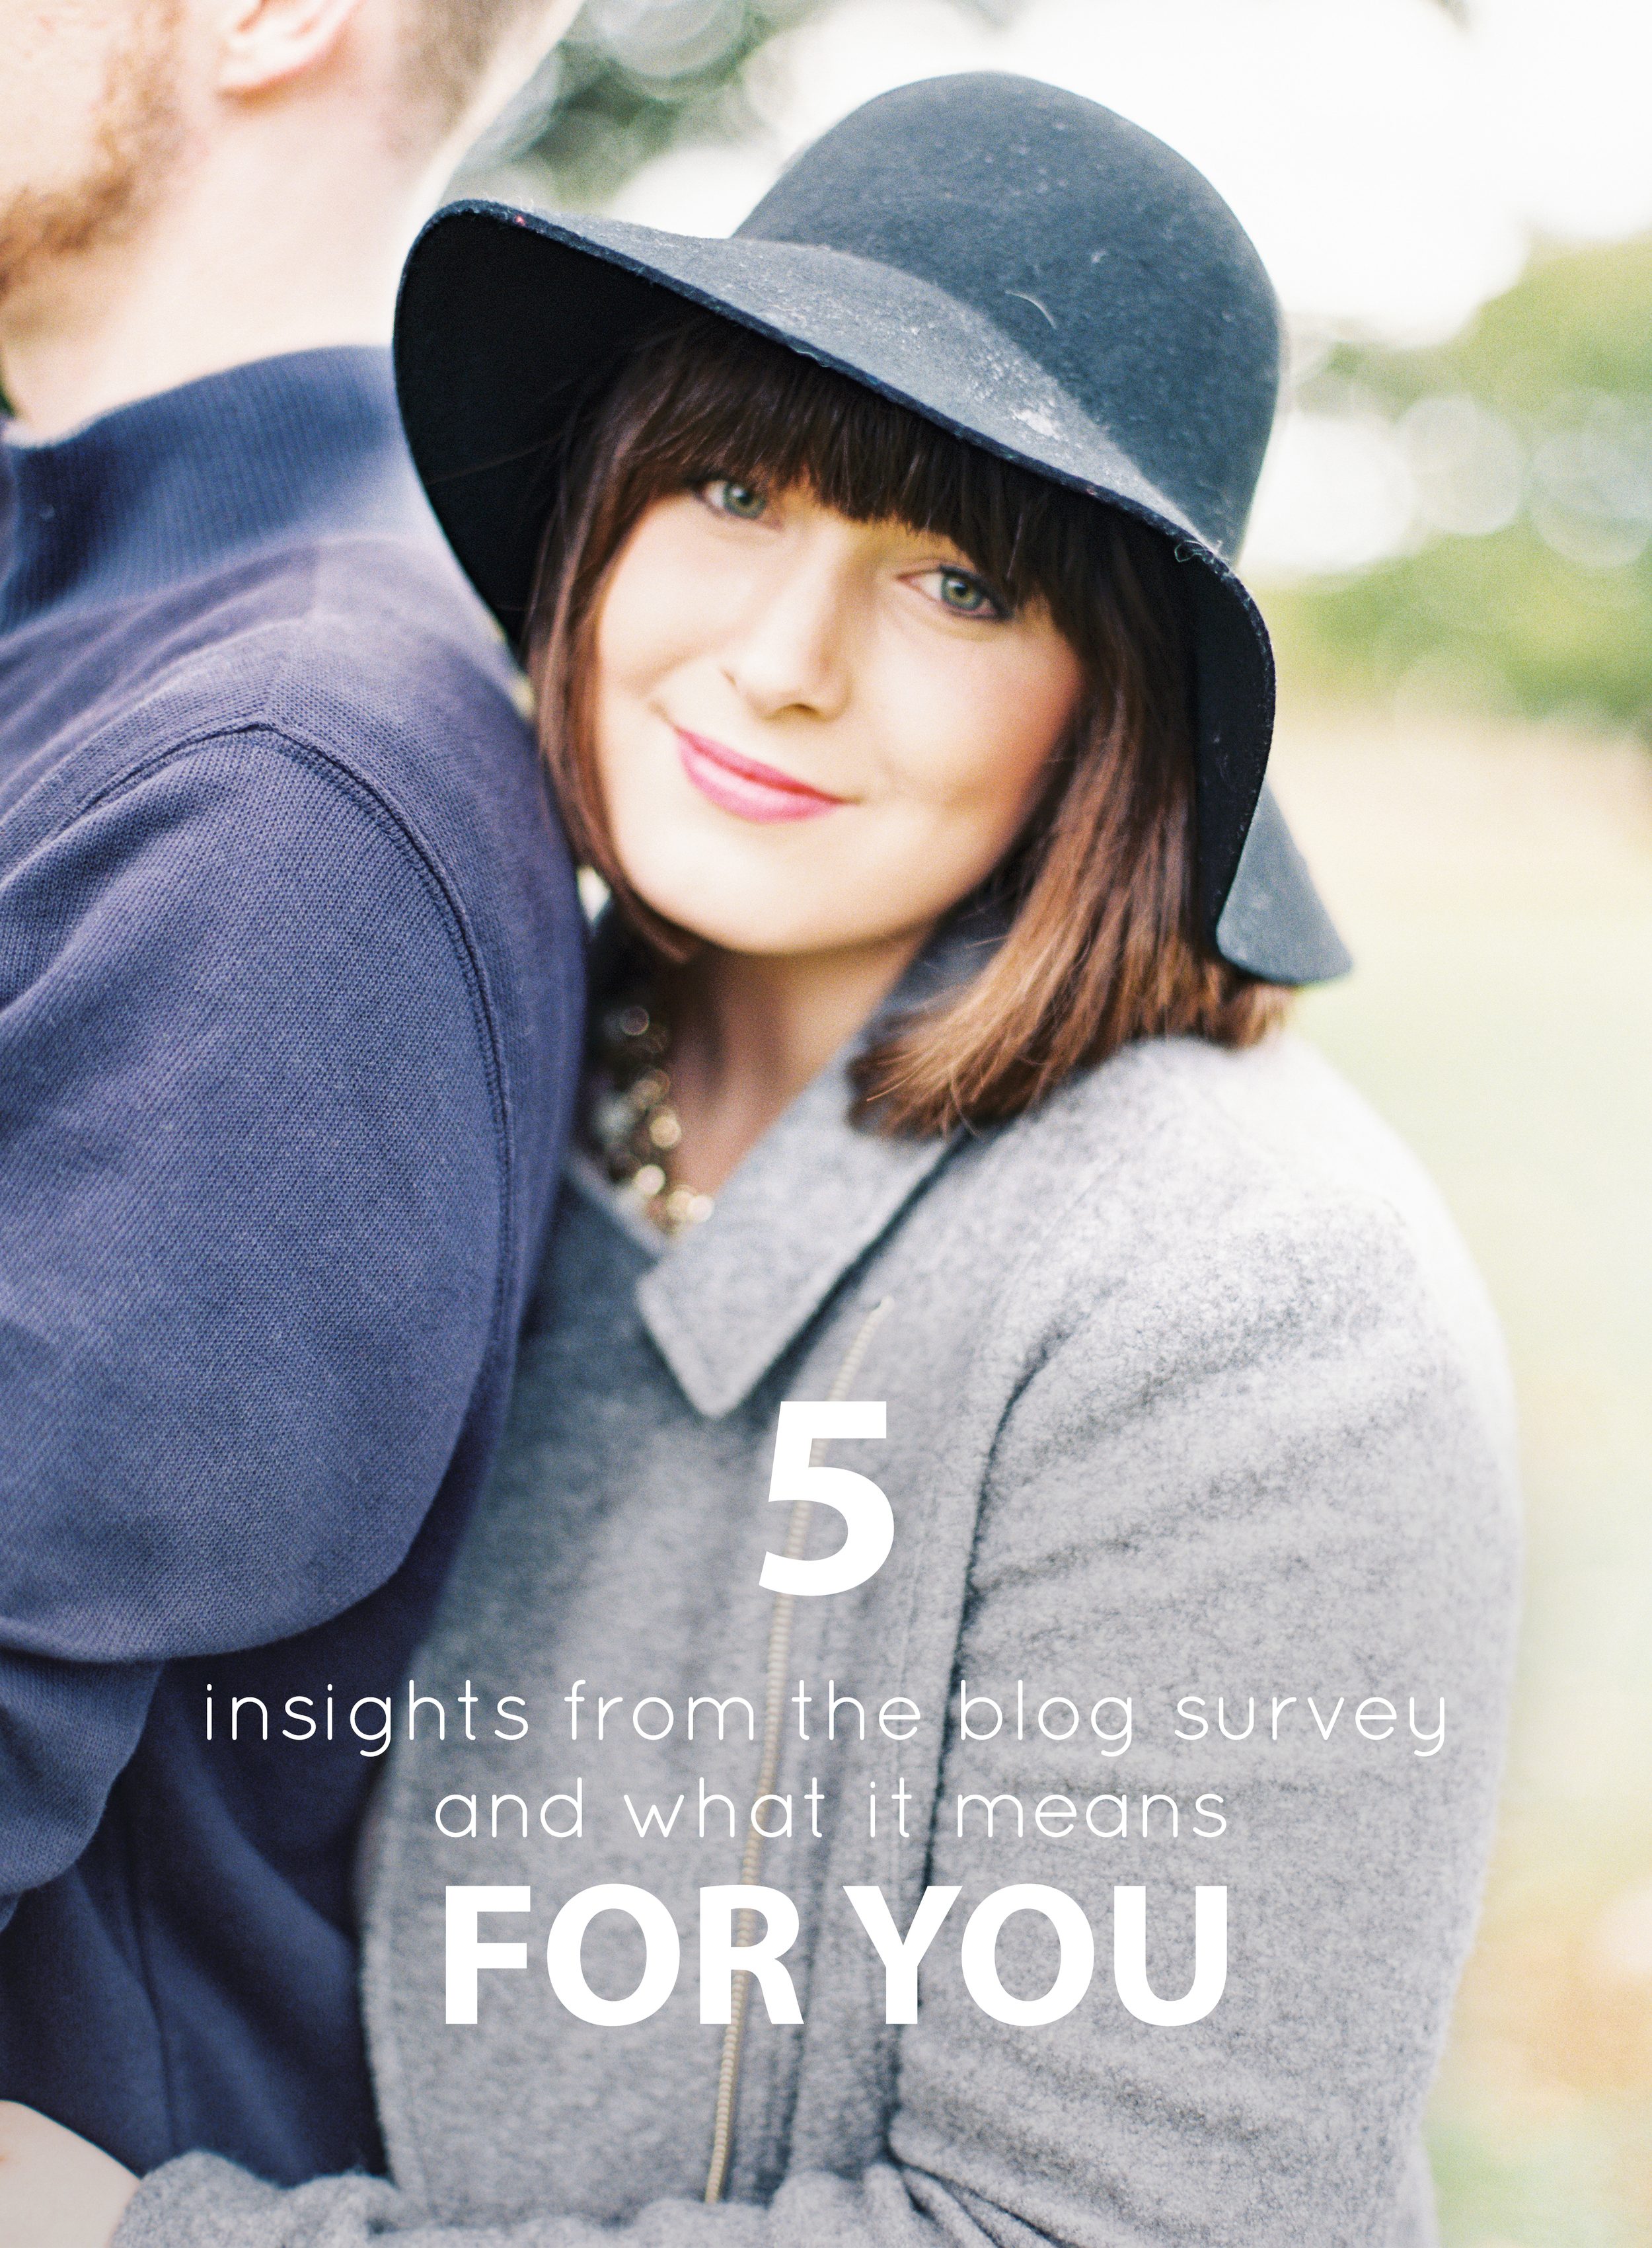 5 Insights from the Blog Survey and What it Means for You - The Jordan Brittley Blog